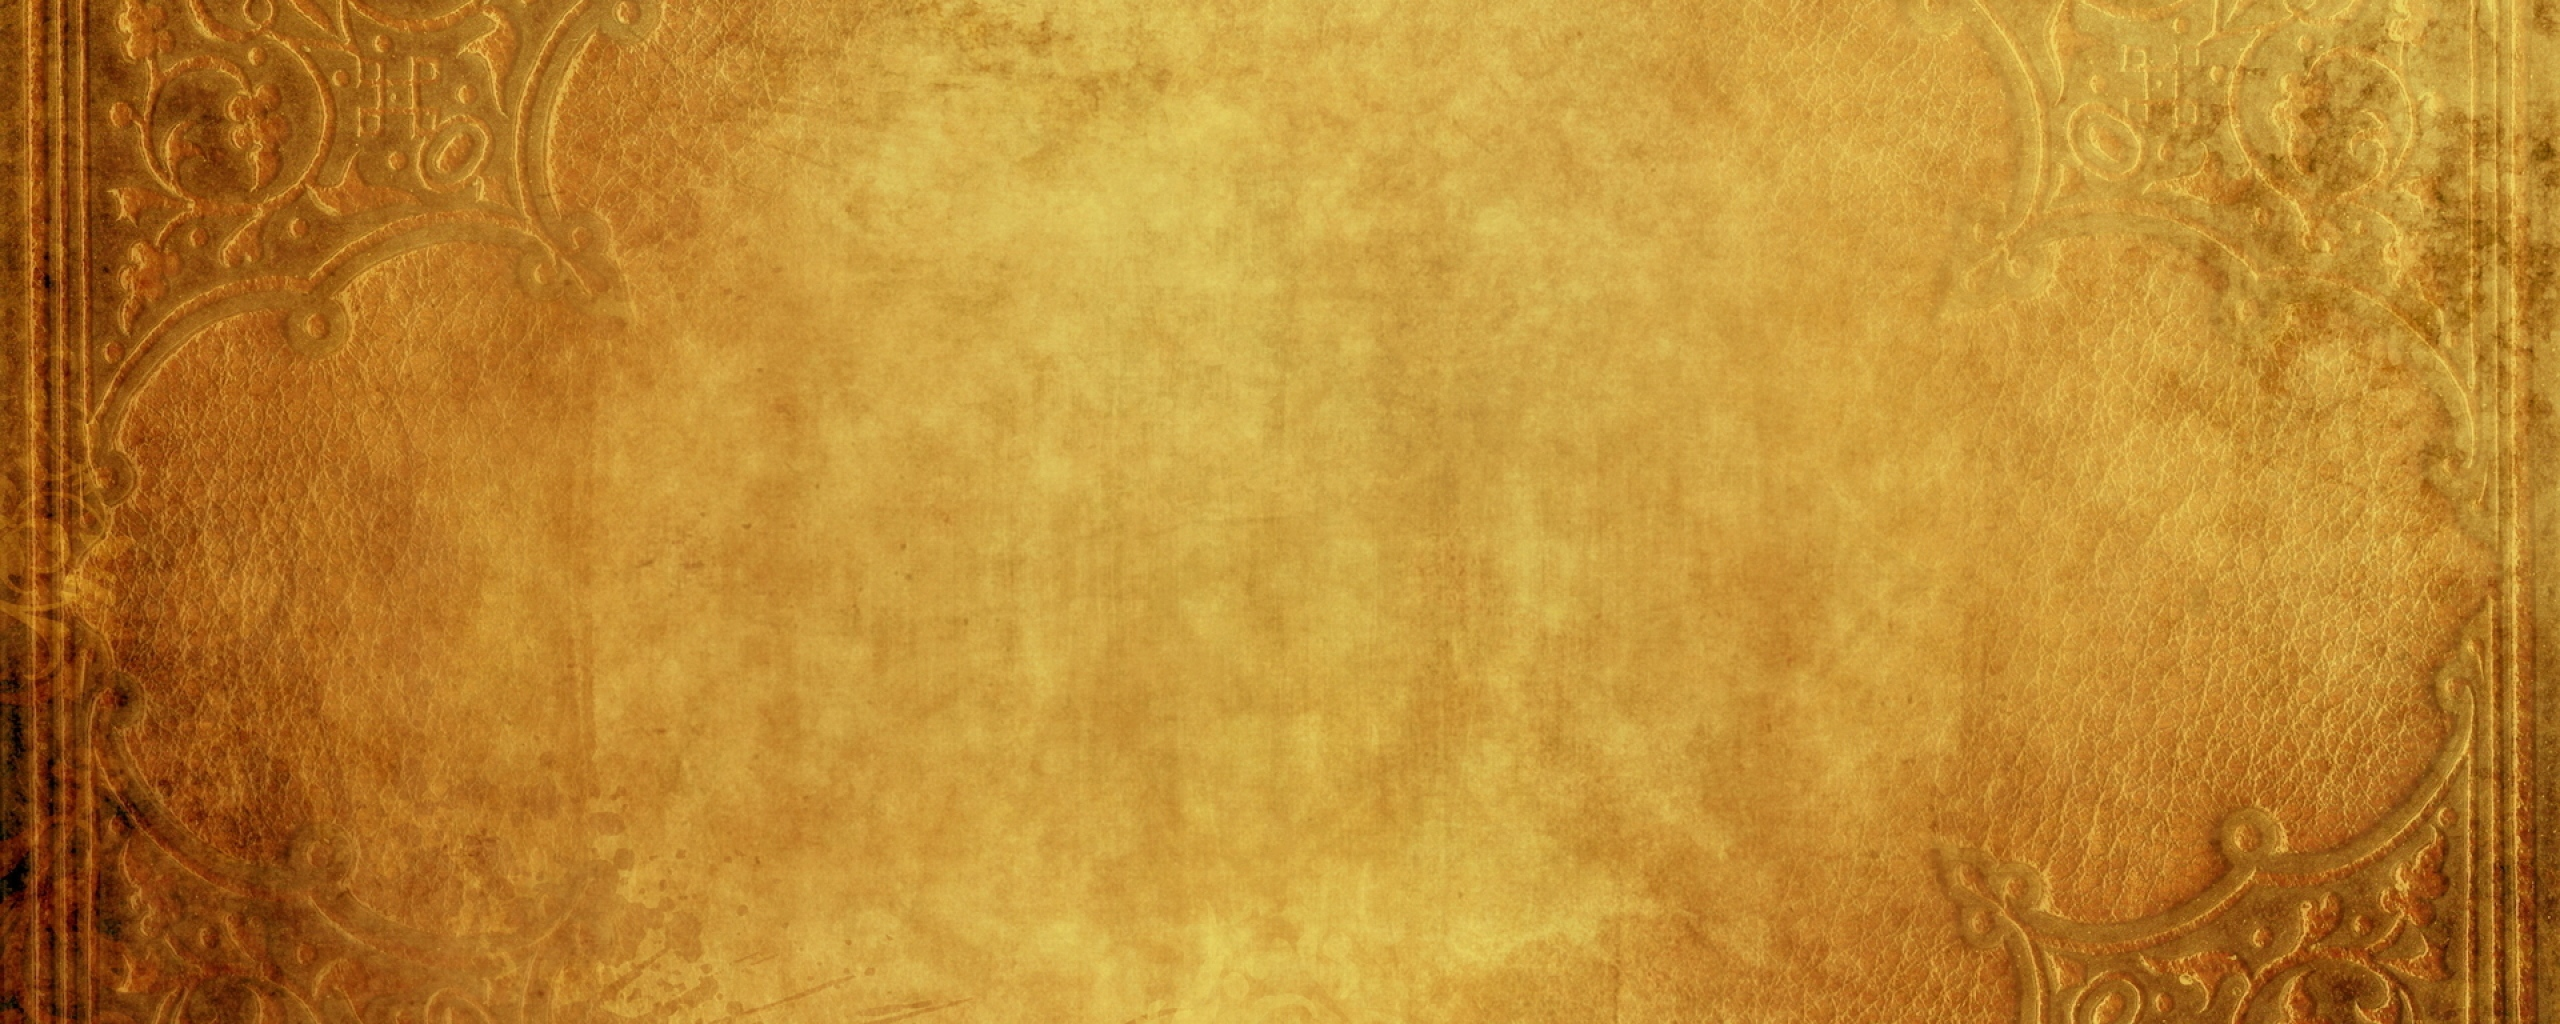 2560x1024 Wallpaper surface, background, patterns, lines, light